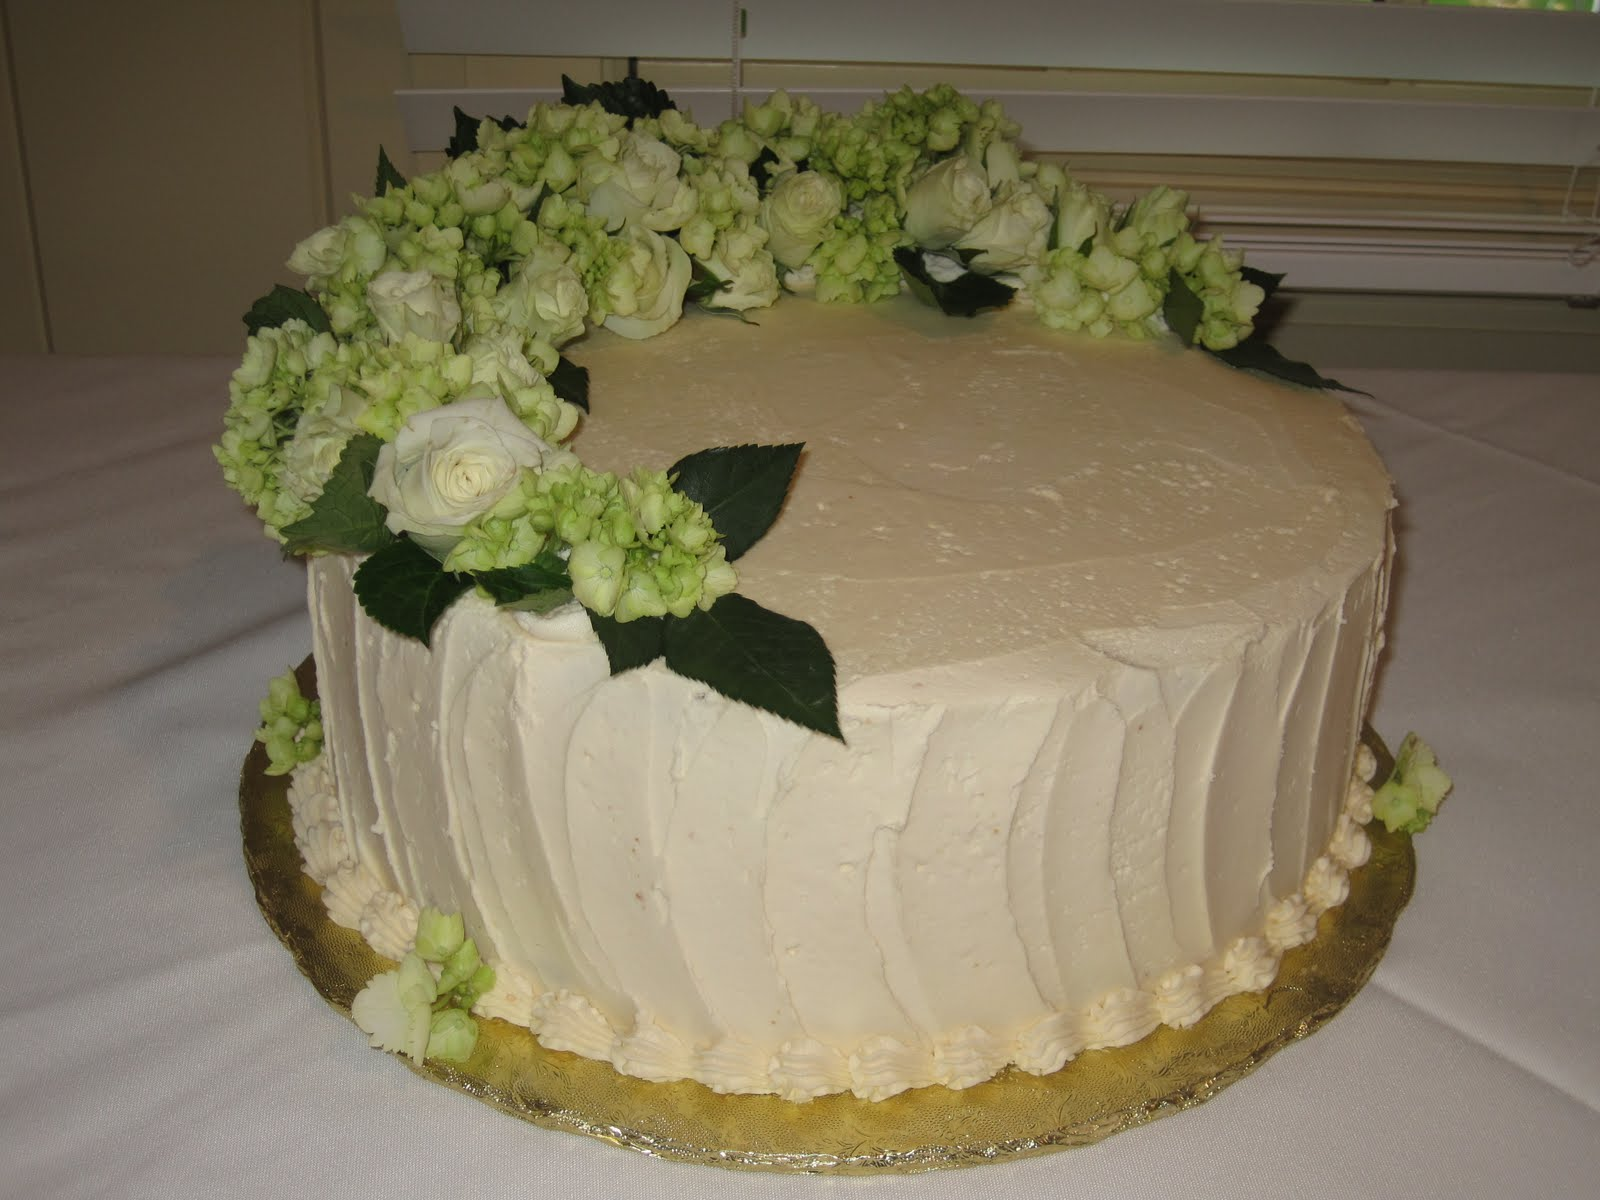 Http Ladychurchillweddingcakes Blogspot Com 2010 10 Decorated Cakes Html